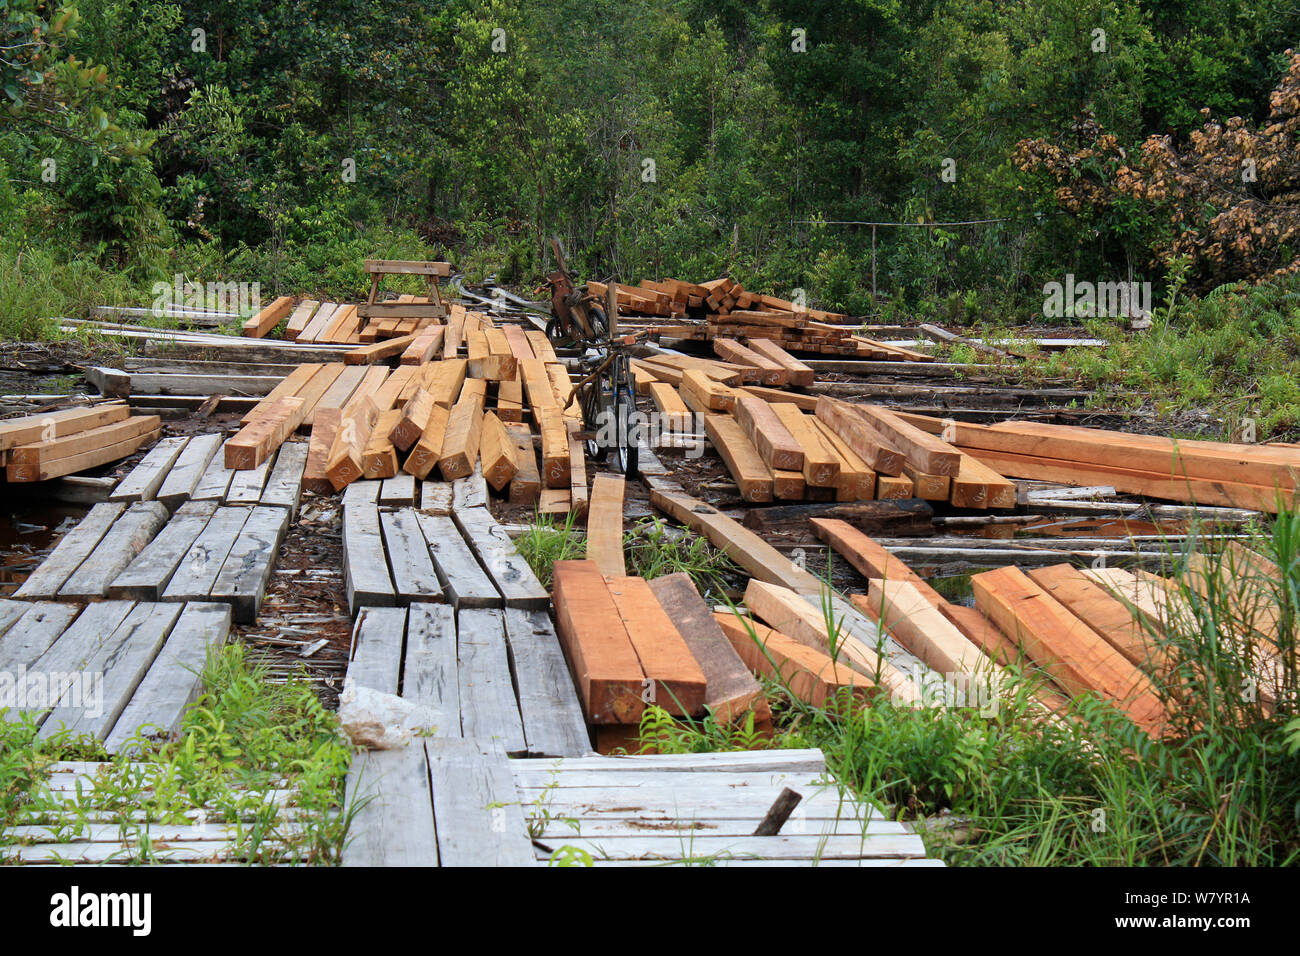 Timber from area of deforested land, area deforested for rubber tapping. Central Kalimantan,  Indonesian Borneo. June 2010. Stock Photo